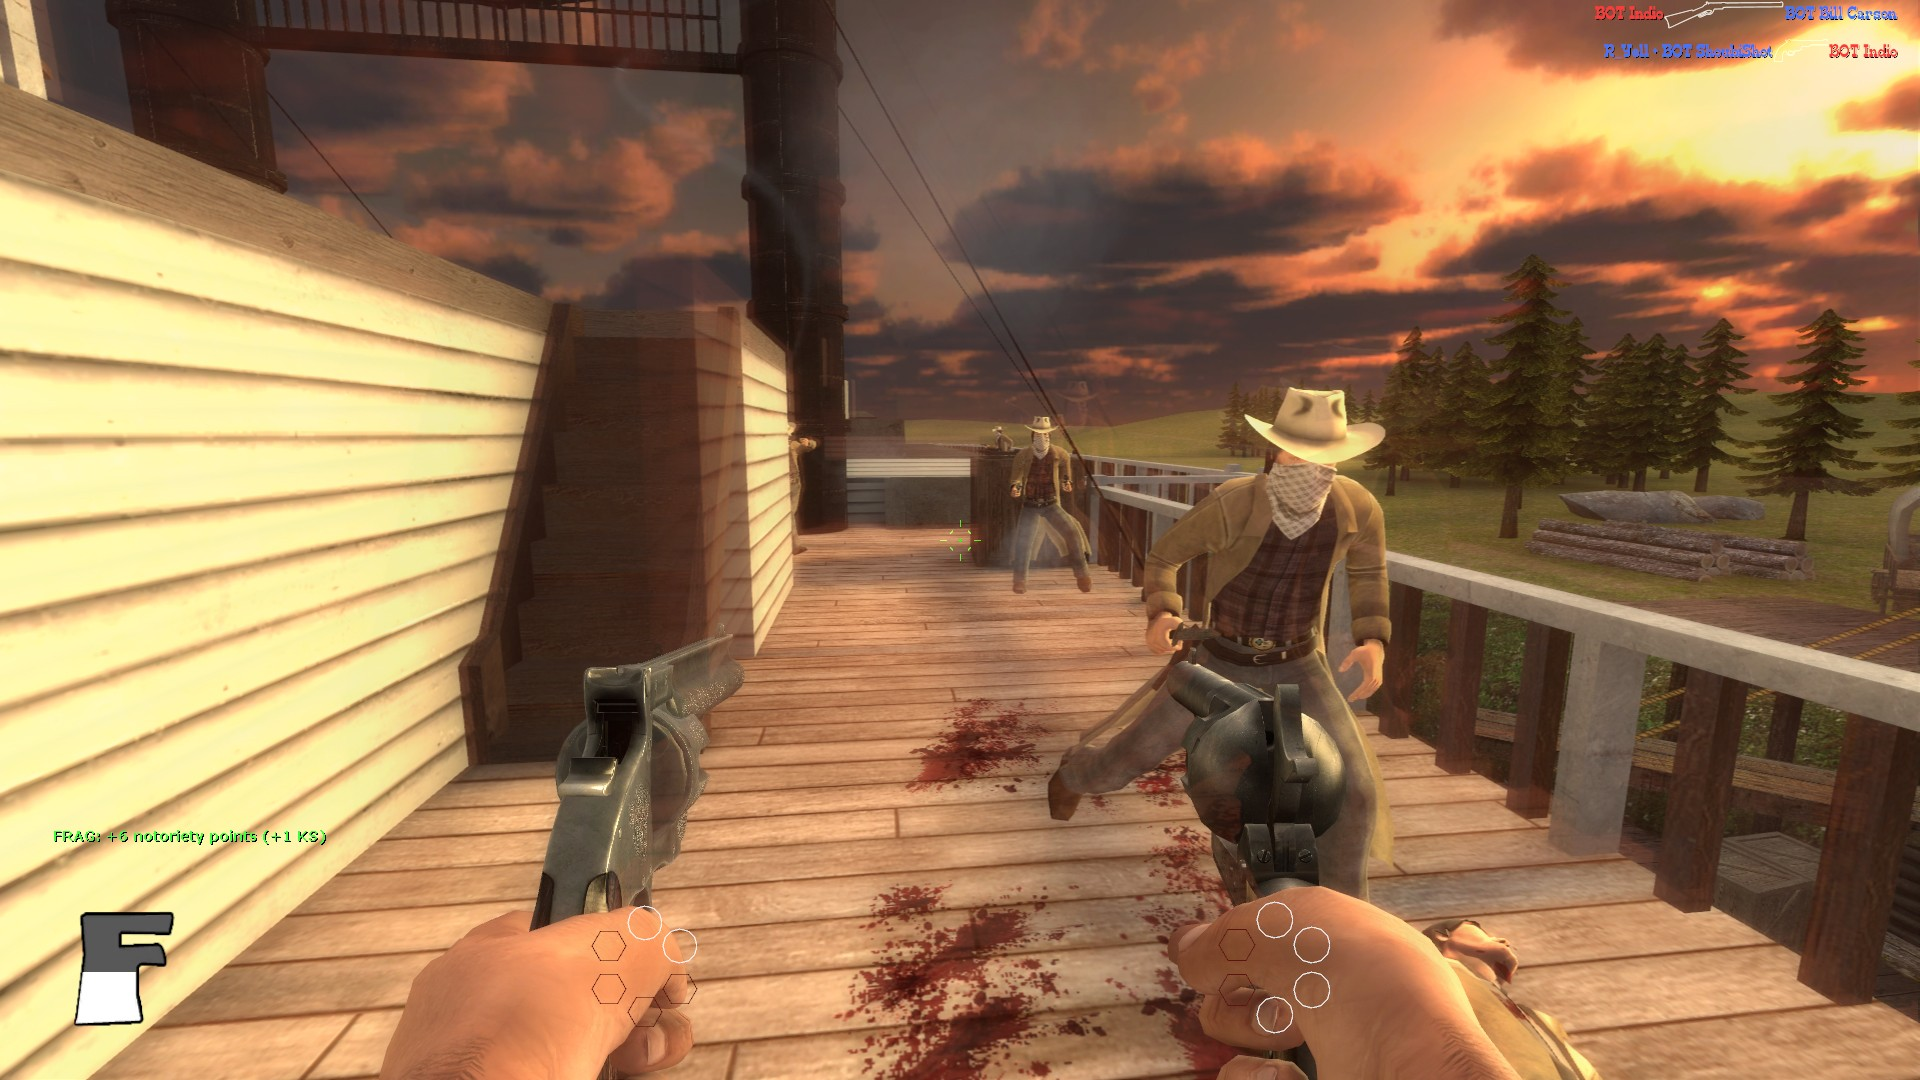 Fistful of Frags Is a Free FPS Multiplayer on Steam for Linux Based